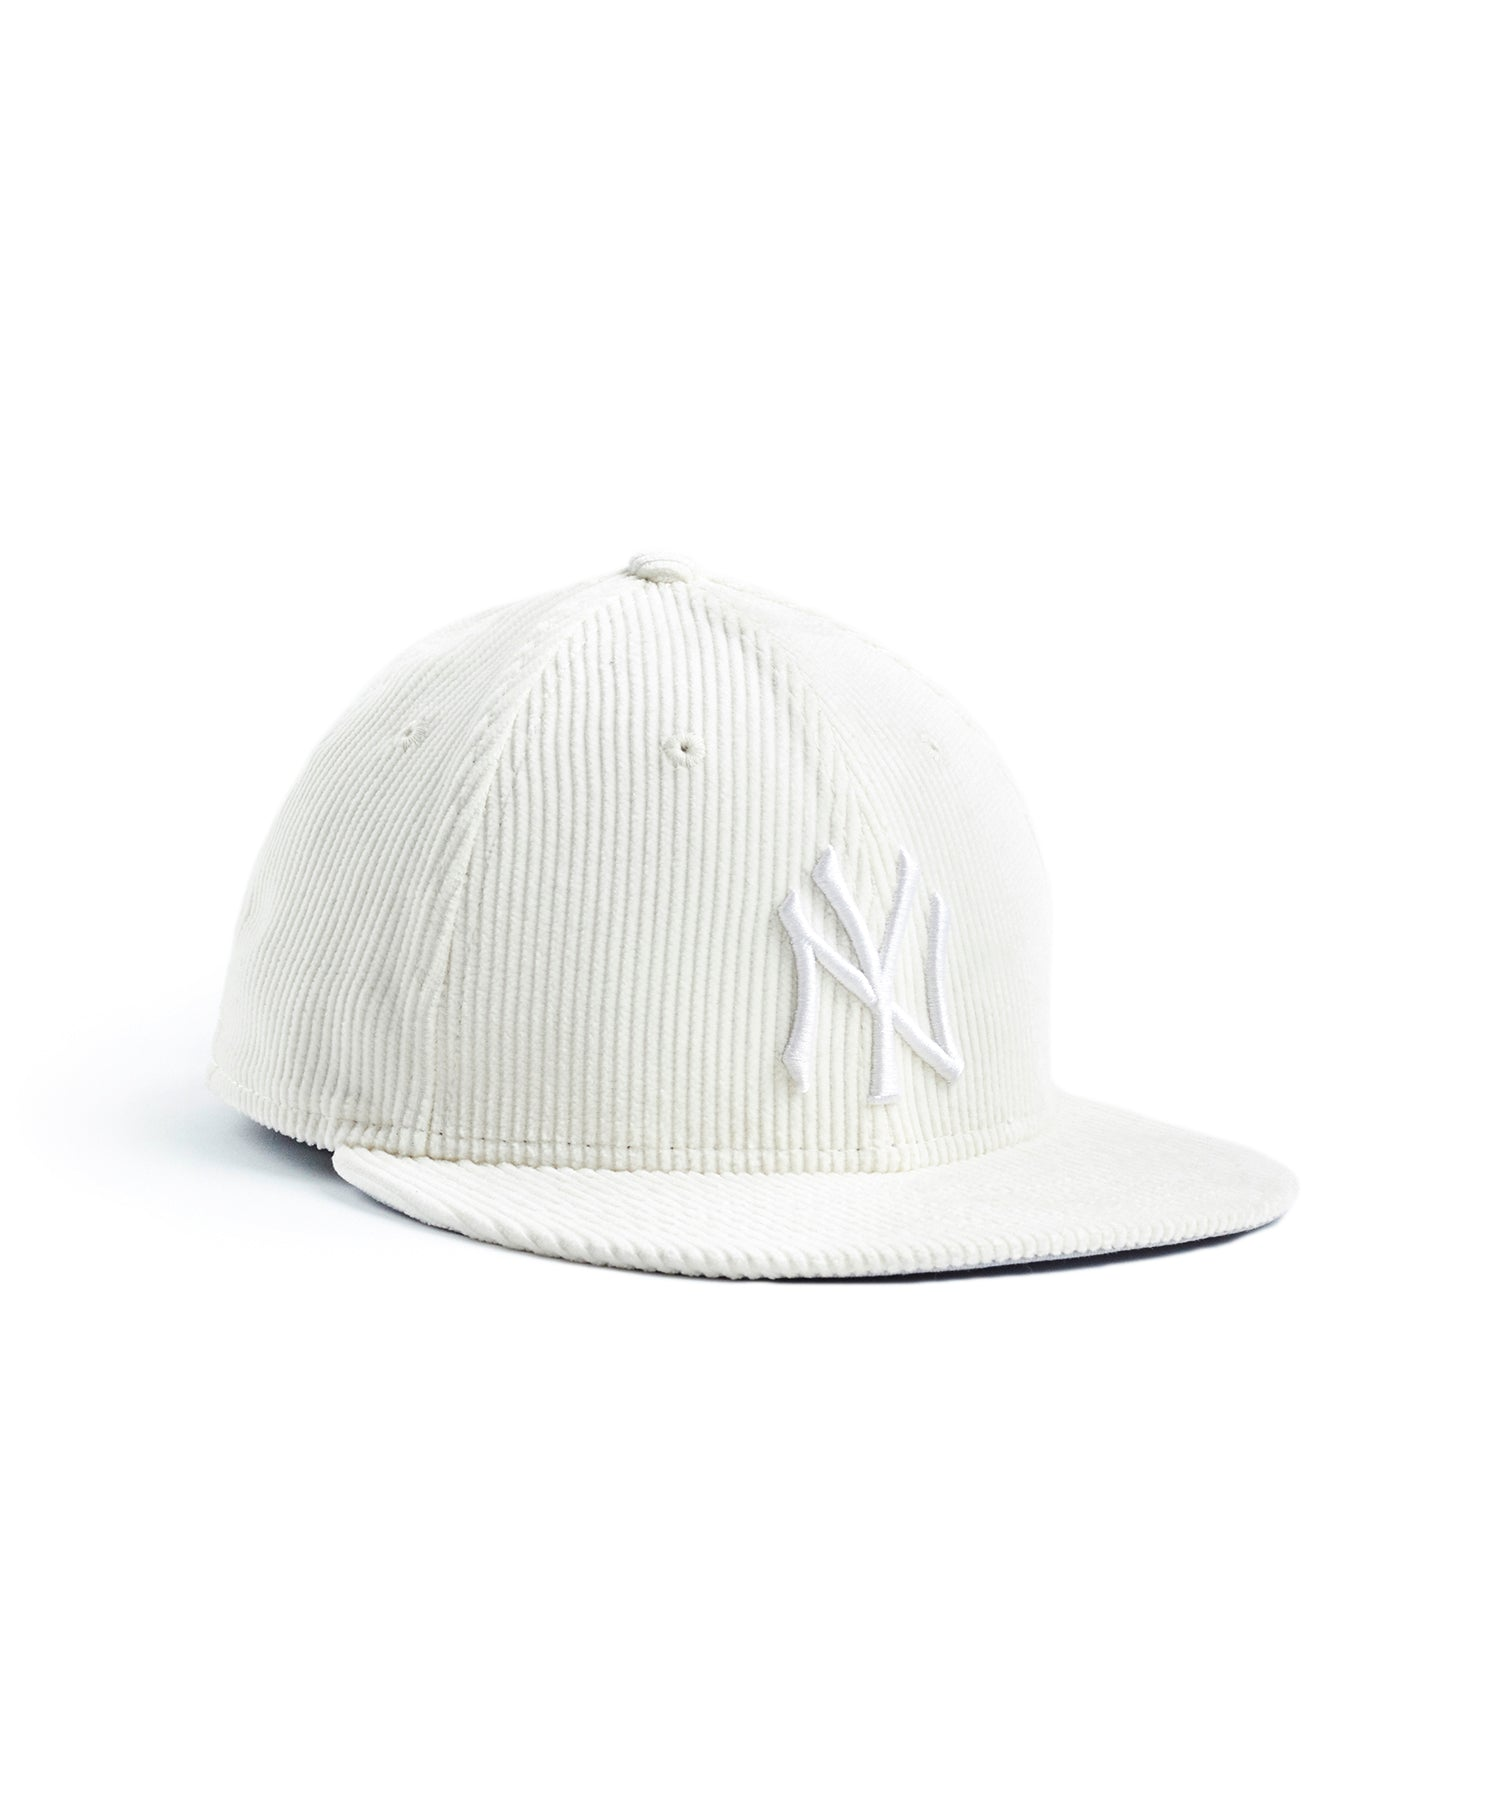 Exclusive Todd Snyder + New Era Corduroy Yankees Cap in White